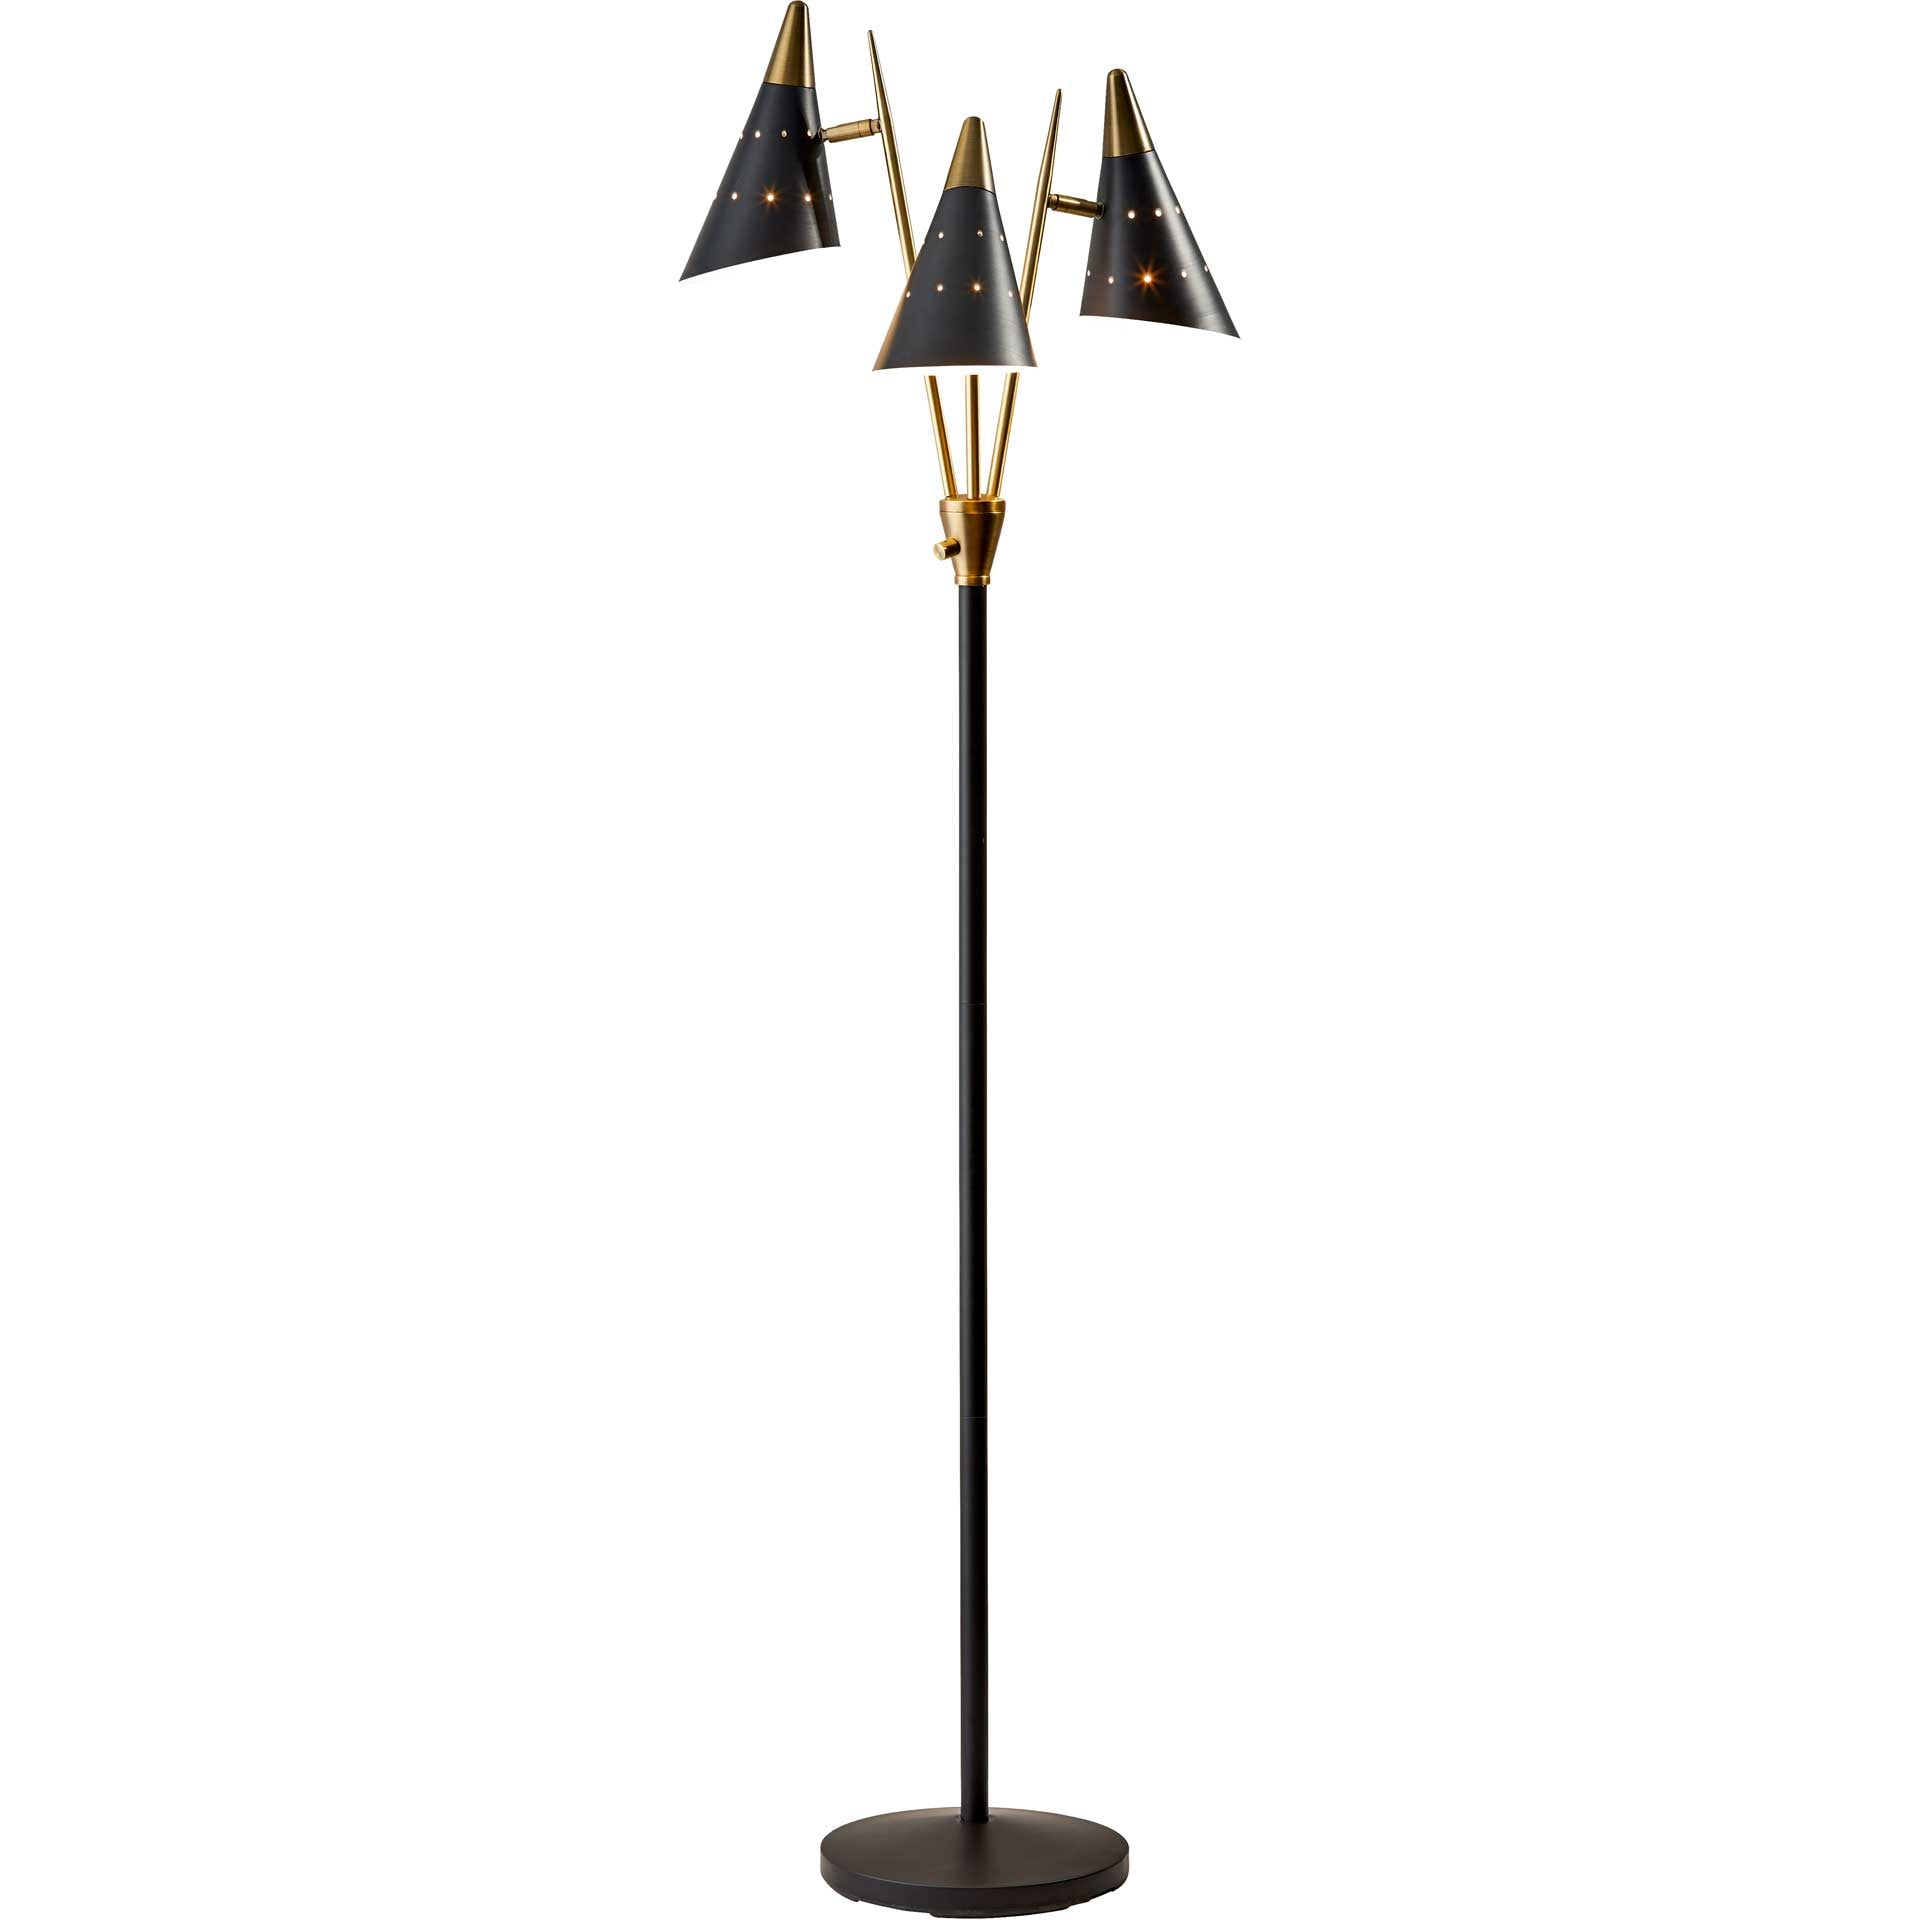 Nancy 3-Arm Floor Lamp Black/Brass